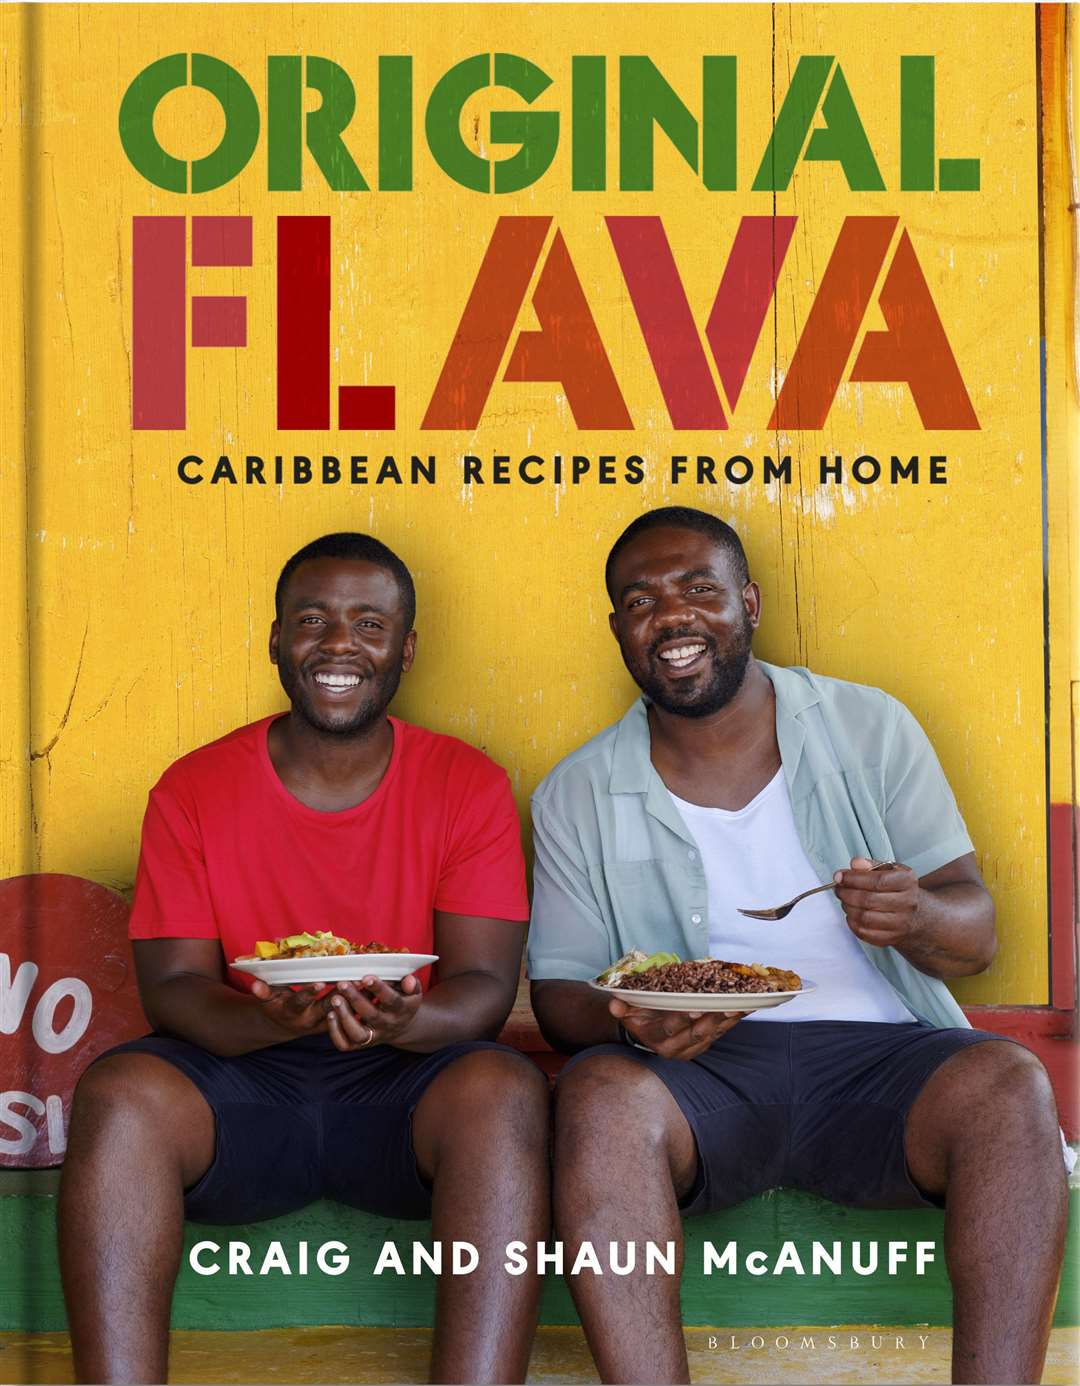 Original Flava: Caribbean Recipes From Home by Craig and Shaun McAnuff, is published by Bloomsbury, priced £20. Available now.